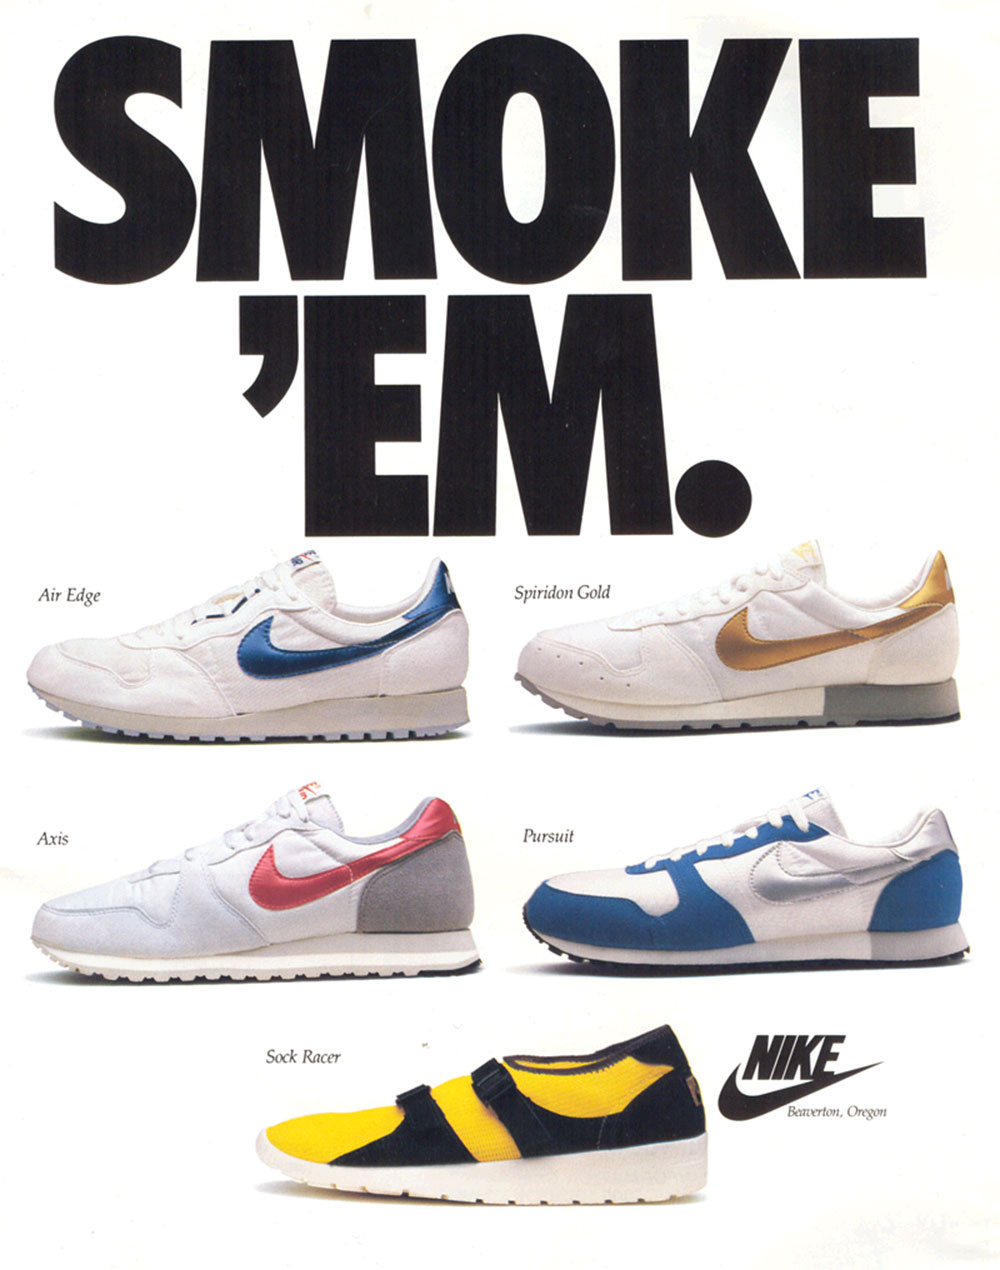 Nike-Print-Ads-2 Nike Print Magazine Ads That Boosted The Brand's Popularity